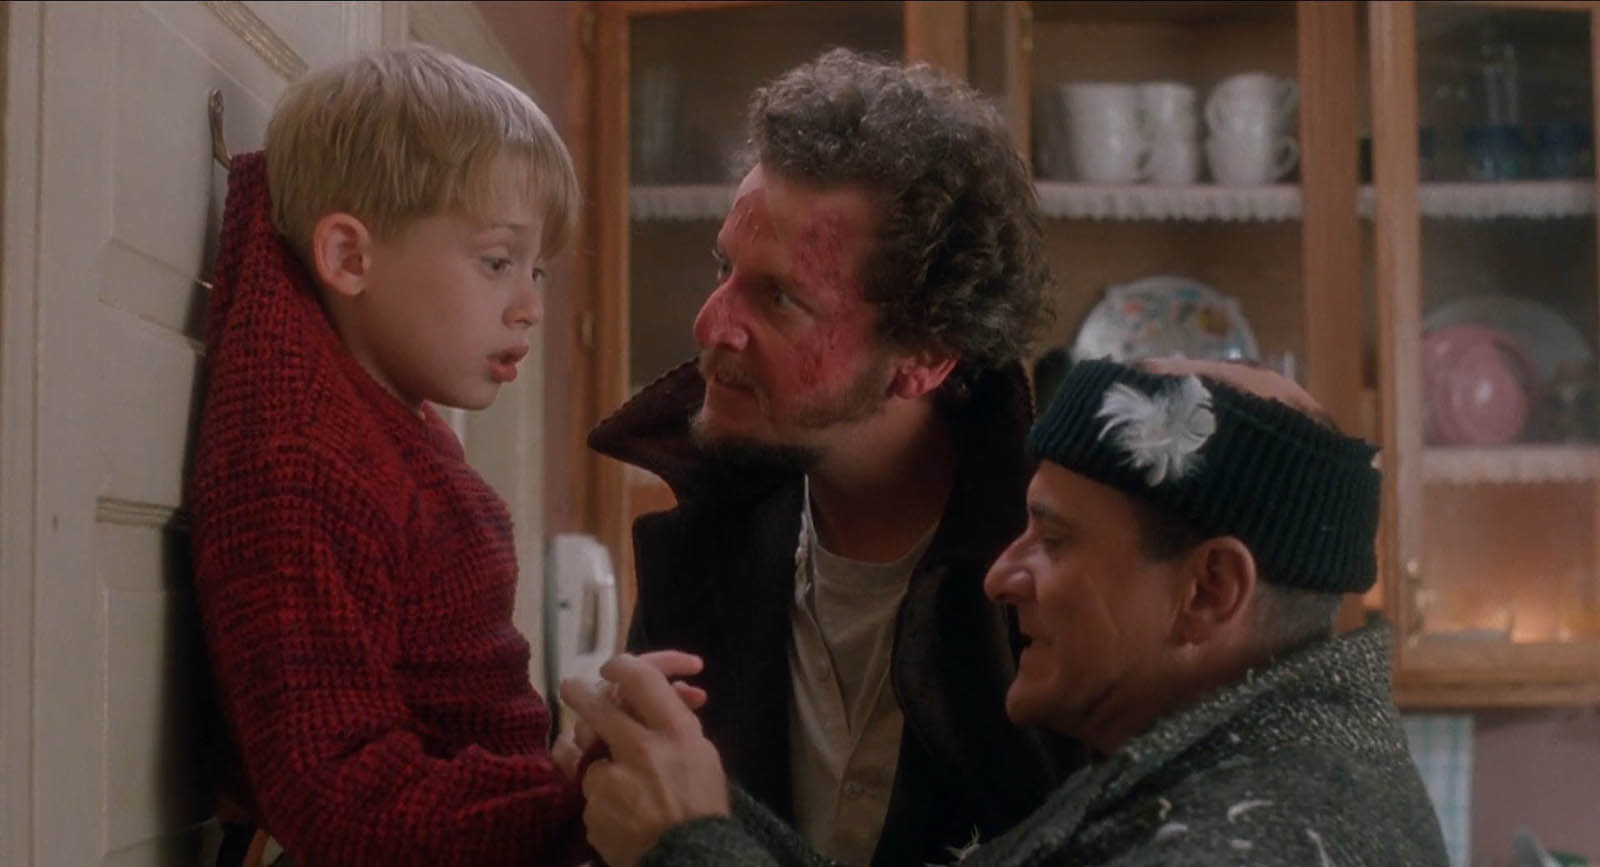 Impeccable Home Alone Facts Classic Facts About Home Home Alone 2 Cast Bird Lady Home Alone 2 Cast Kevin curbed Home Alone 2 Cast